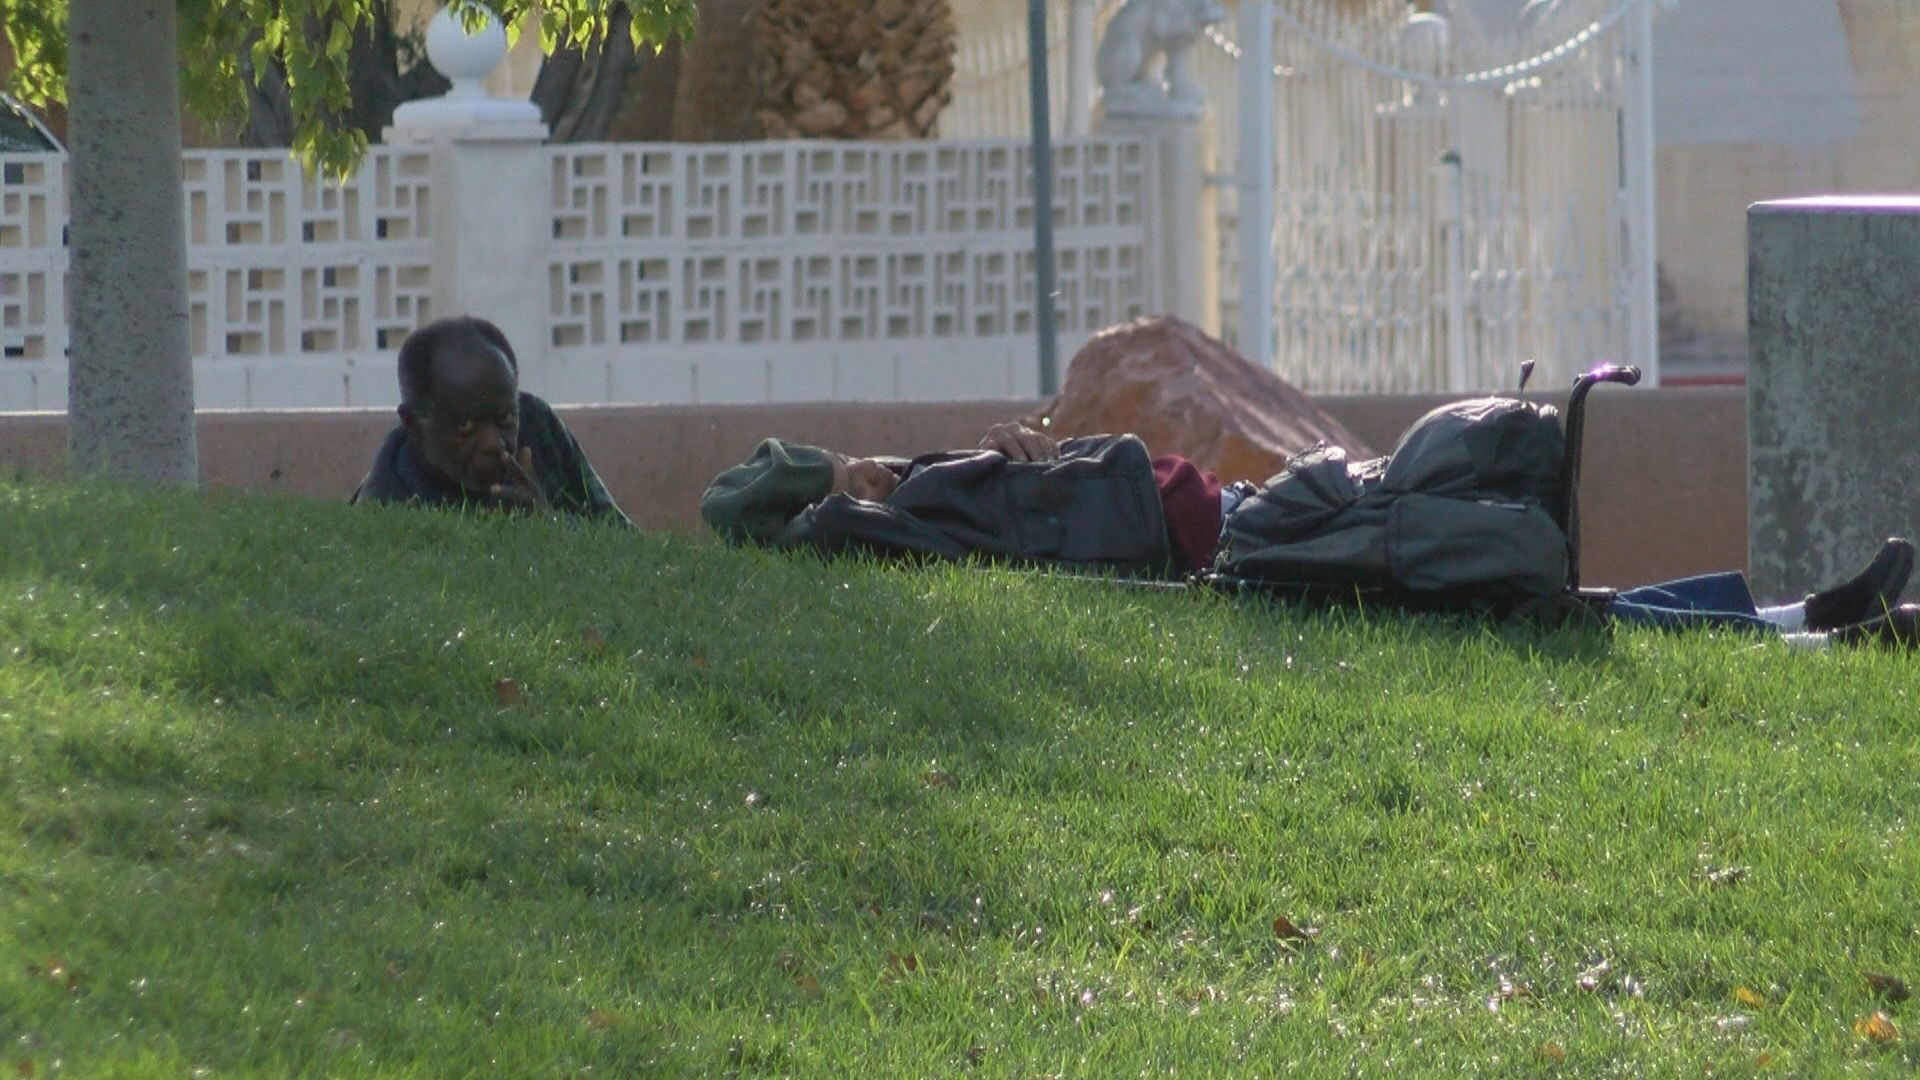 The homeless that don't get to a shelter make Huntridge Circle Park near Maryland Parkway and East Charleston Boulevard their temporary residence. (Scott Kost/KSNV)